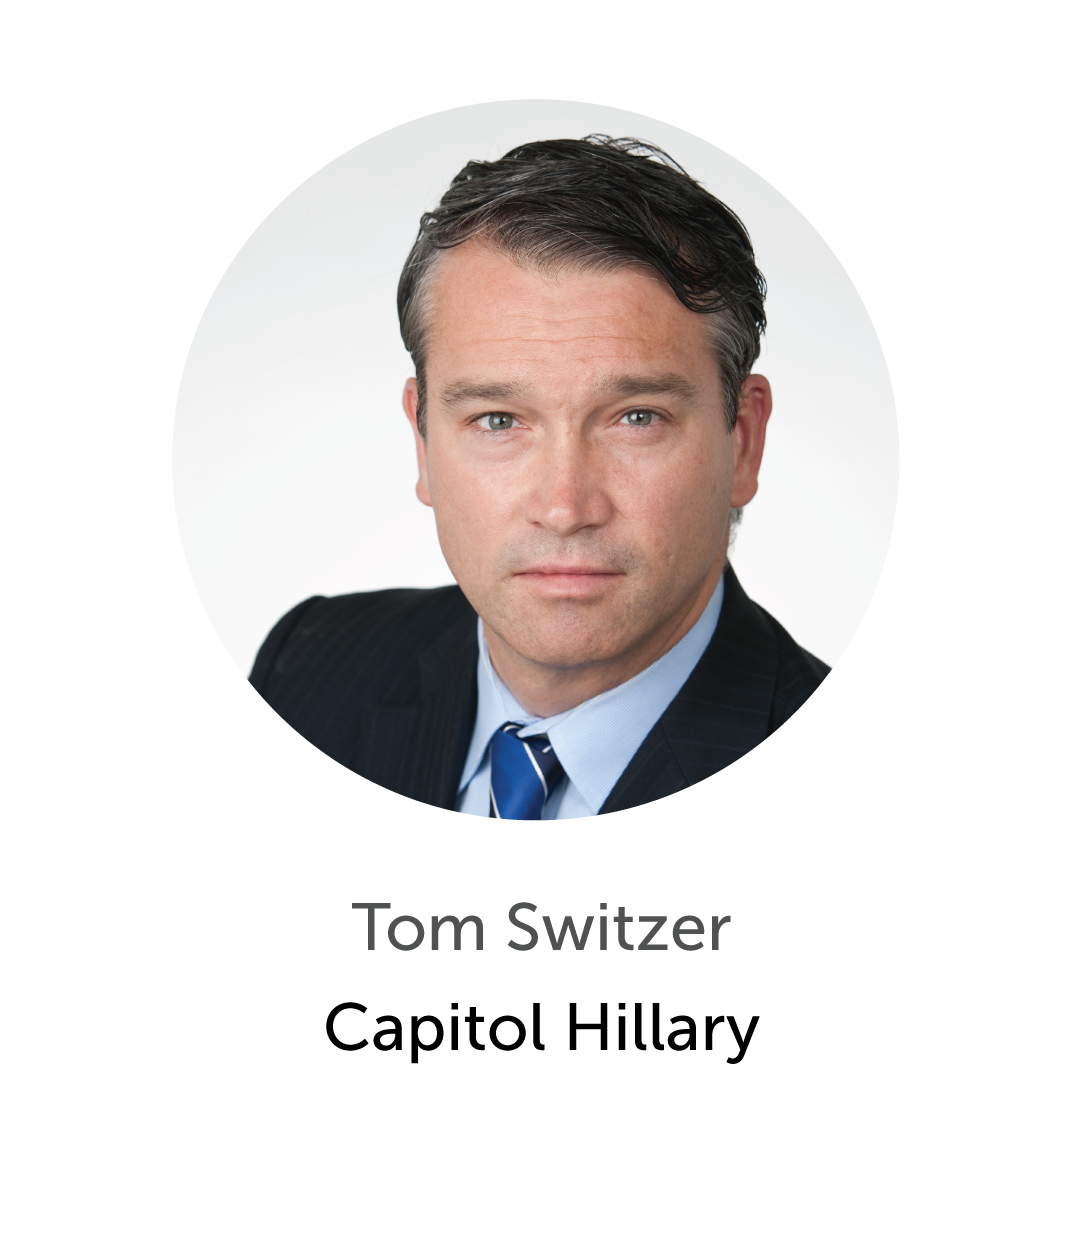 T Switzer-02.png